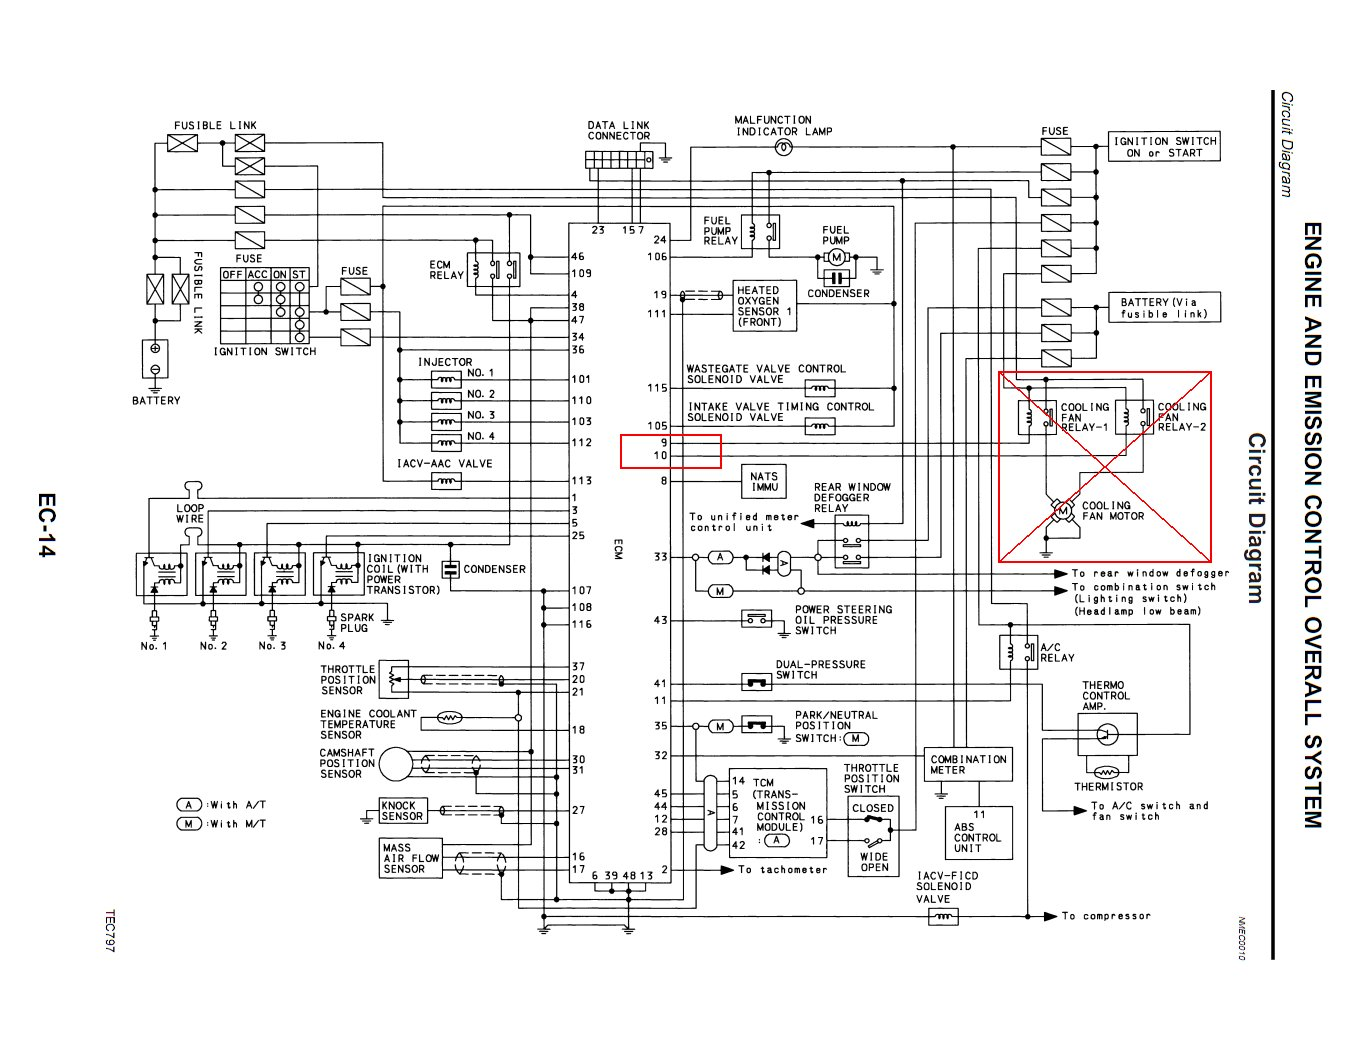 s15 ecu fan 02 100 [ 180sx wiring diagram ] 180sx 2jzgte swap wiring harness sr20det wiring diagram at webbmarketing.co